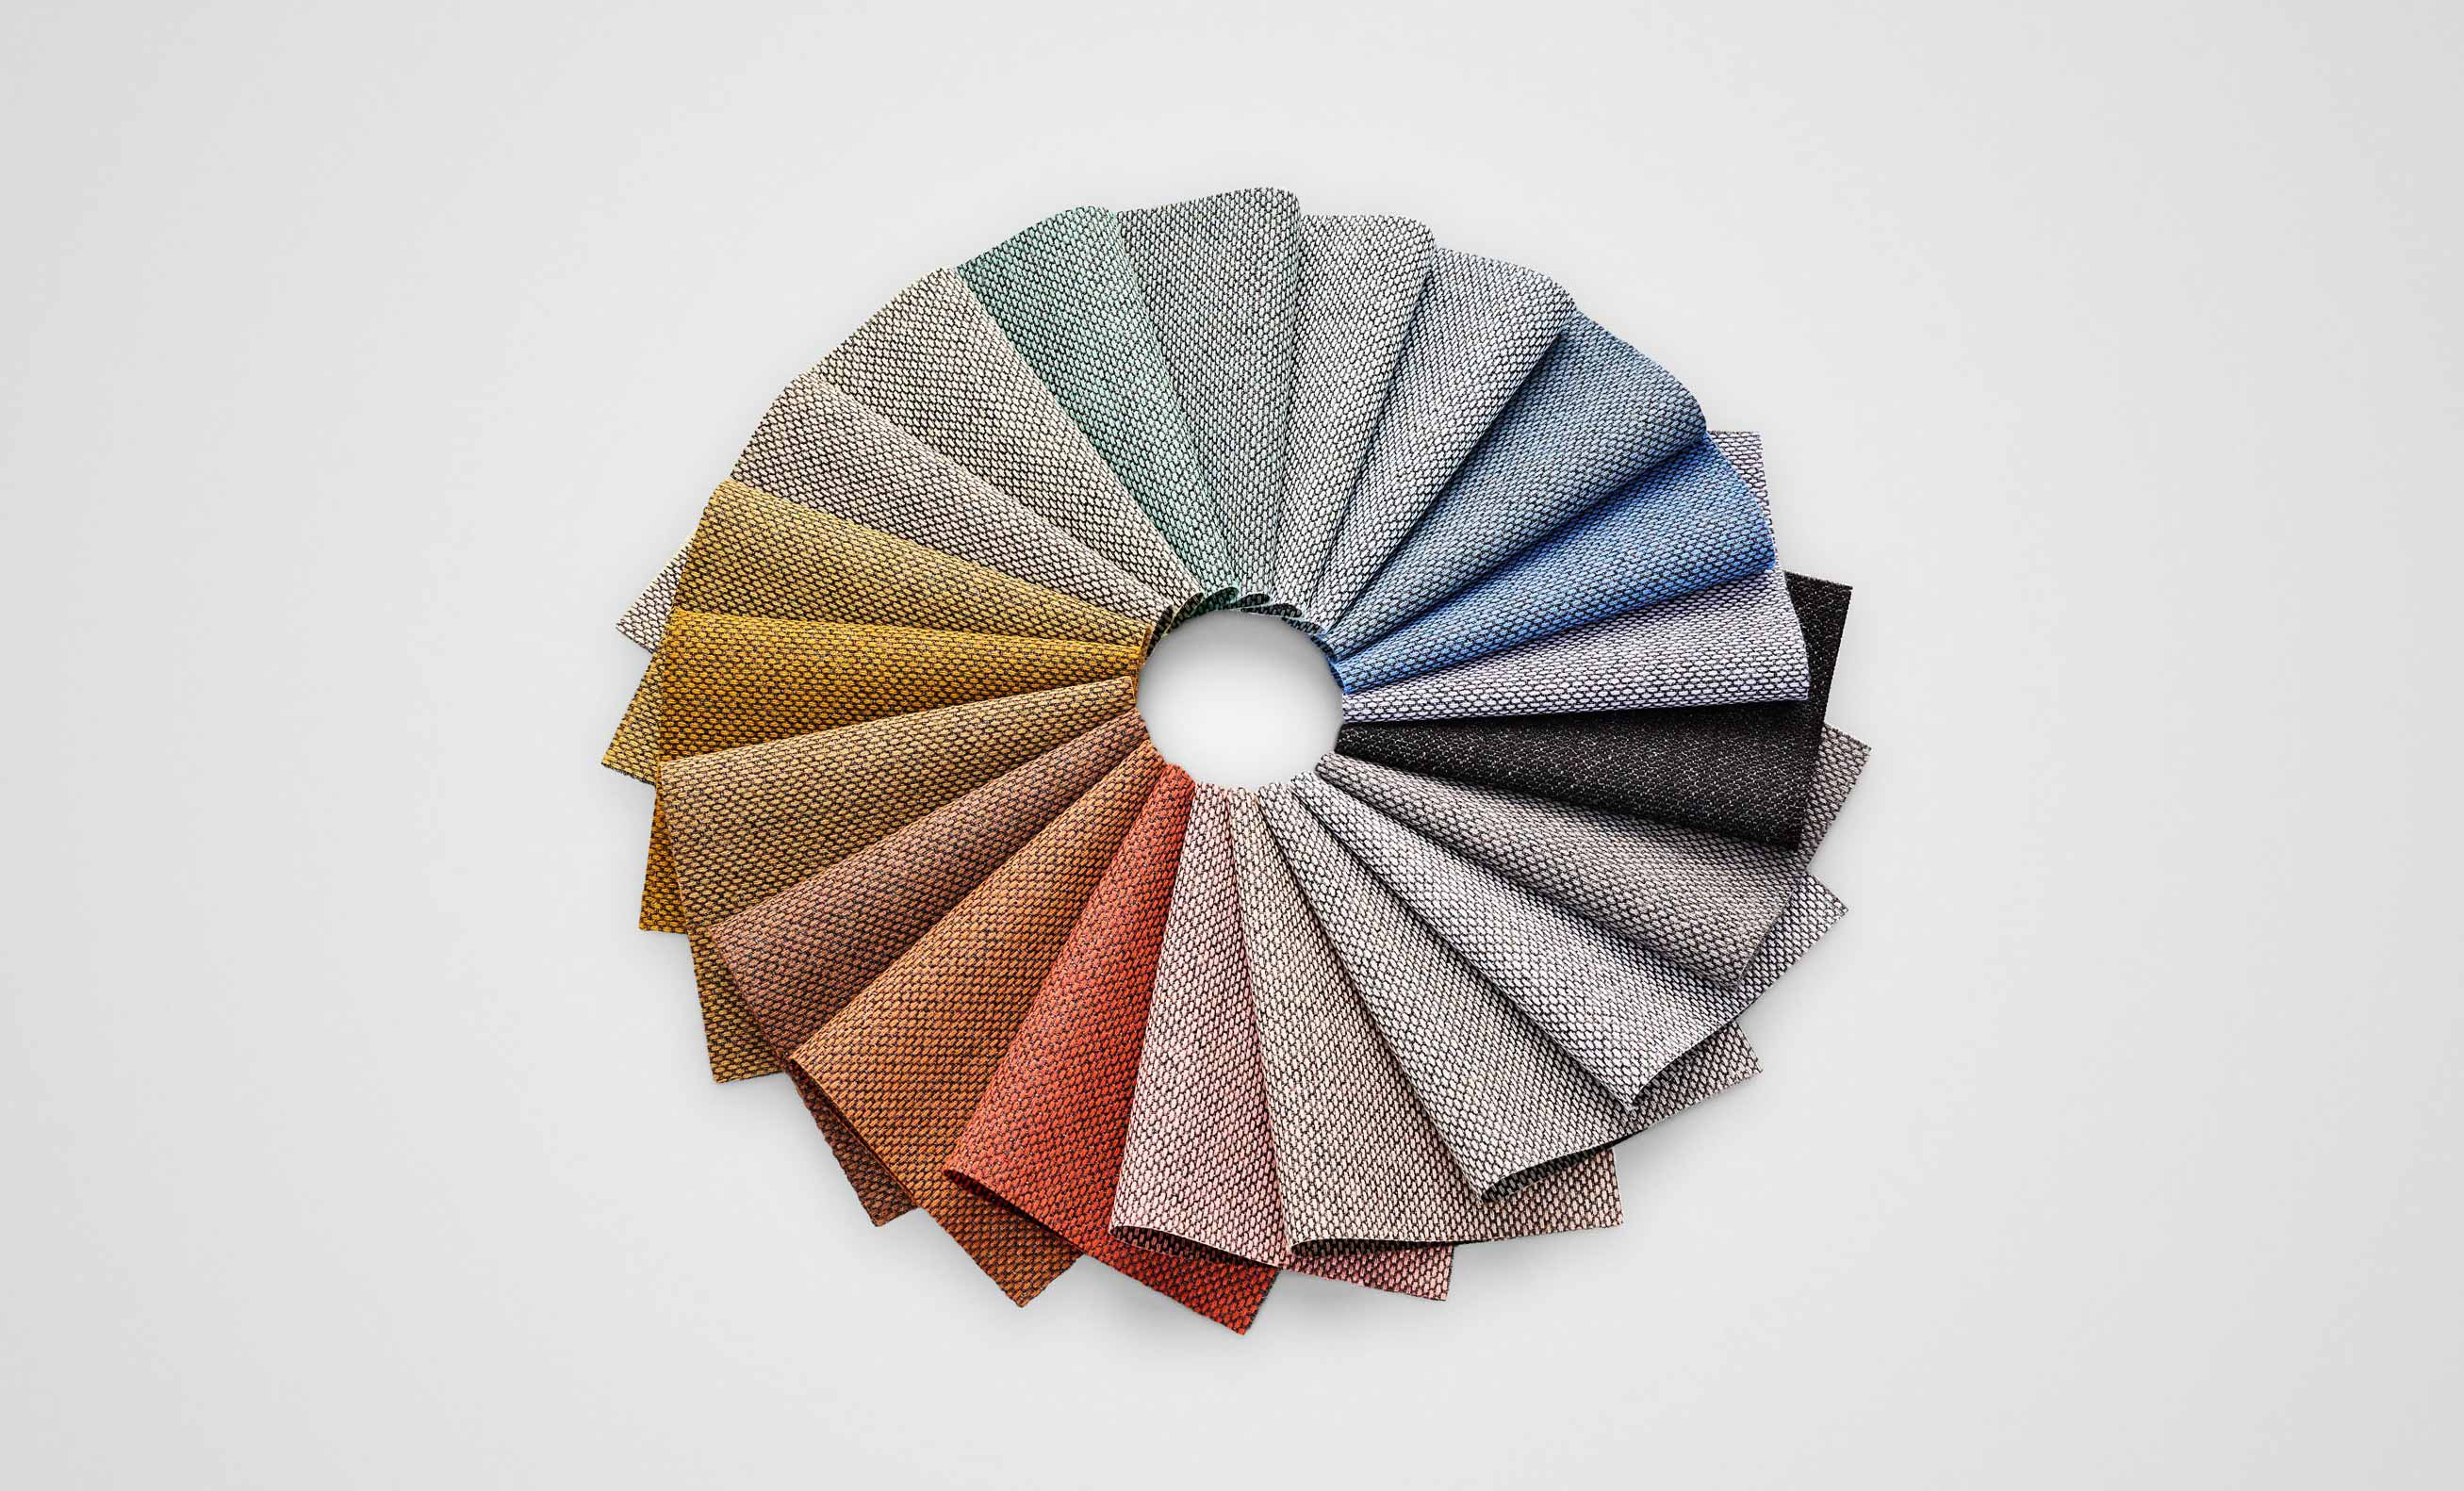 selection of re-wool fabric colour samples laid out in a wheel shape